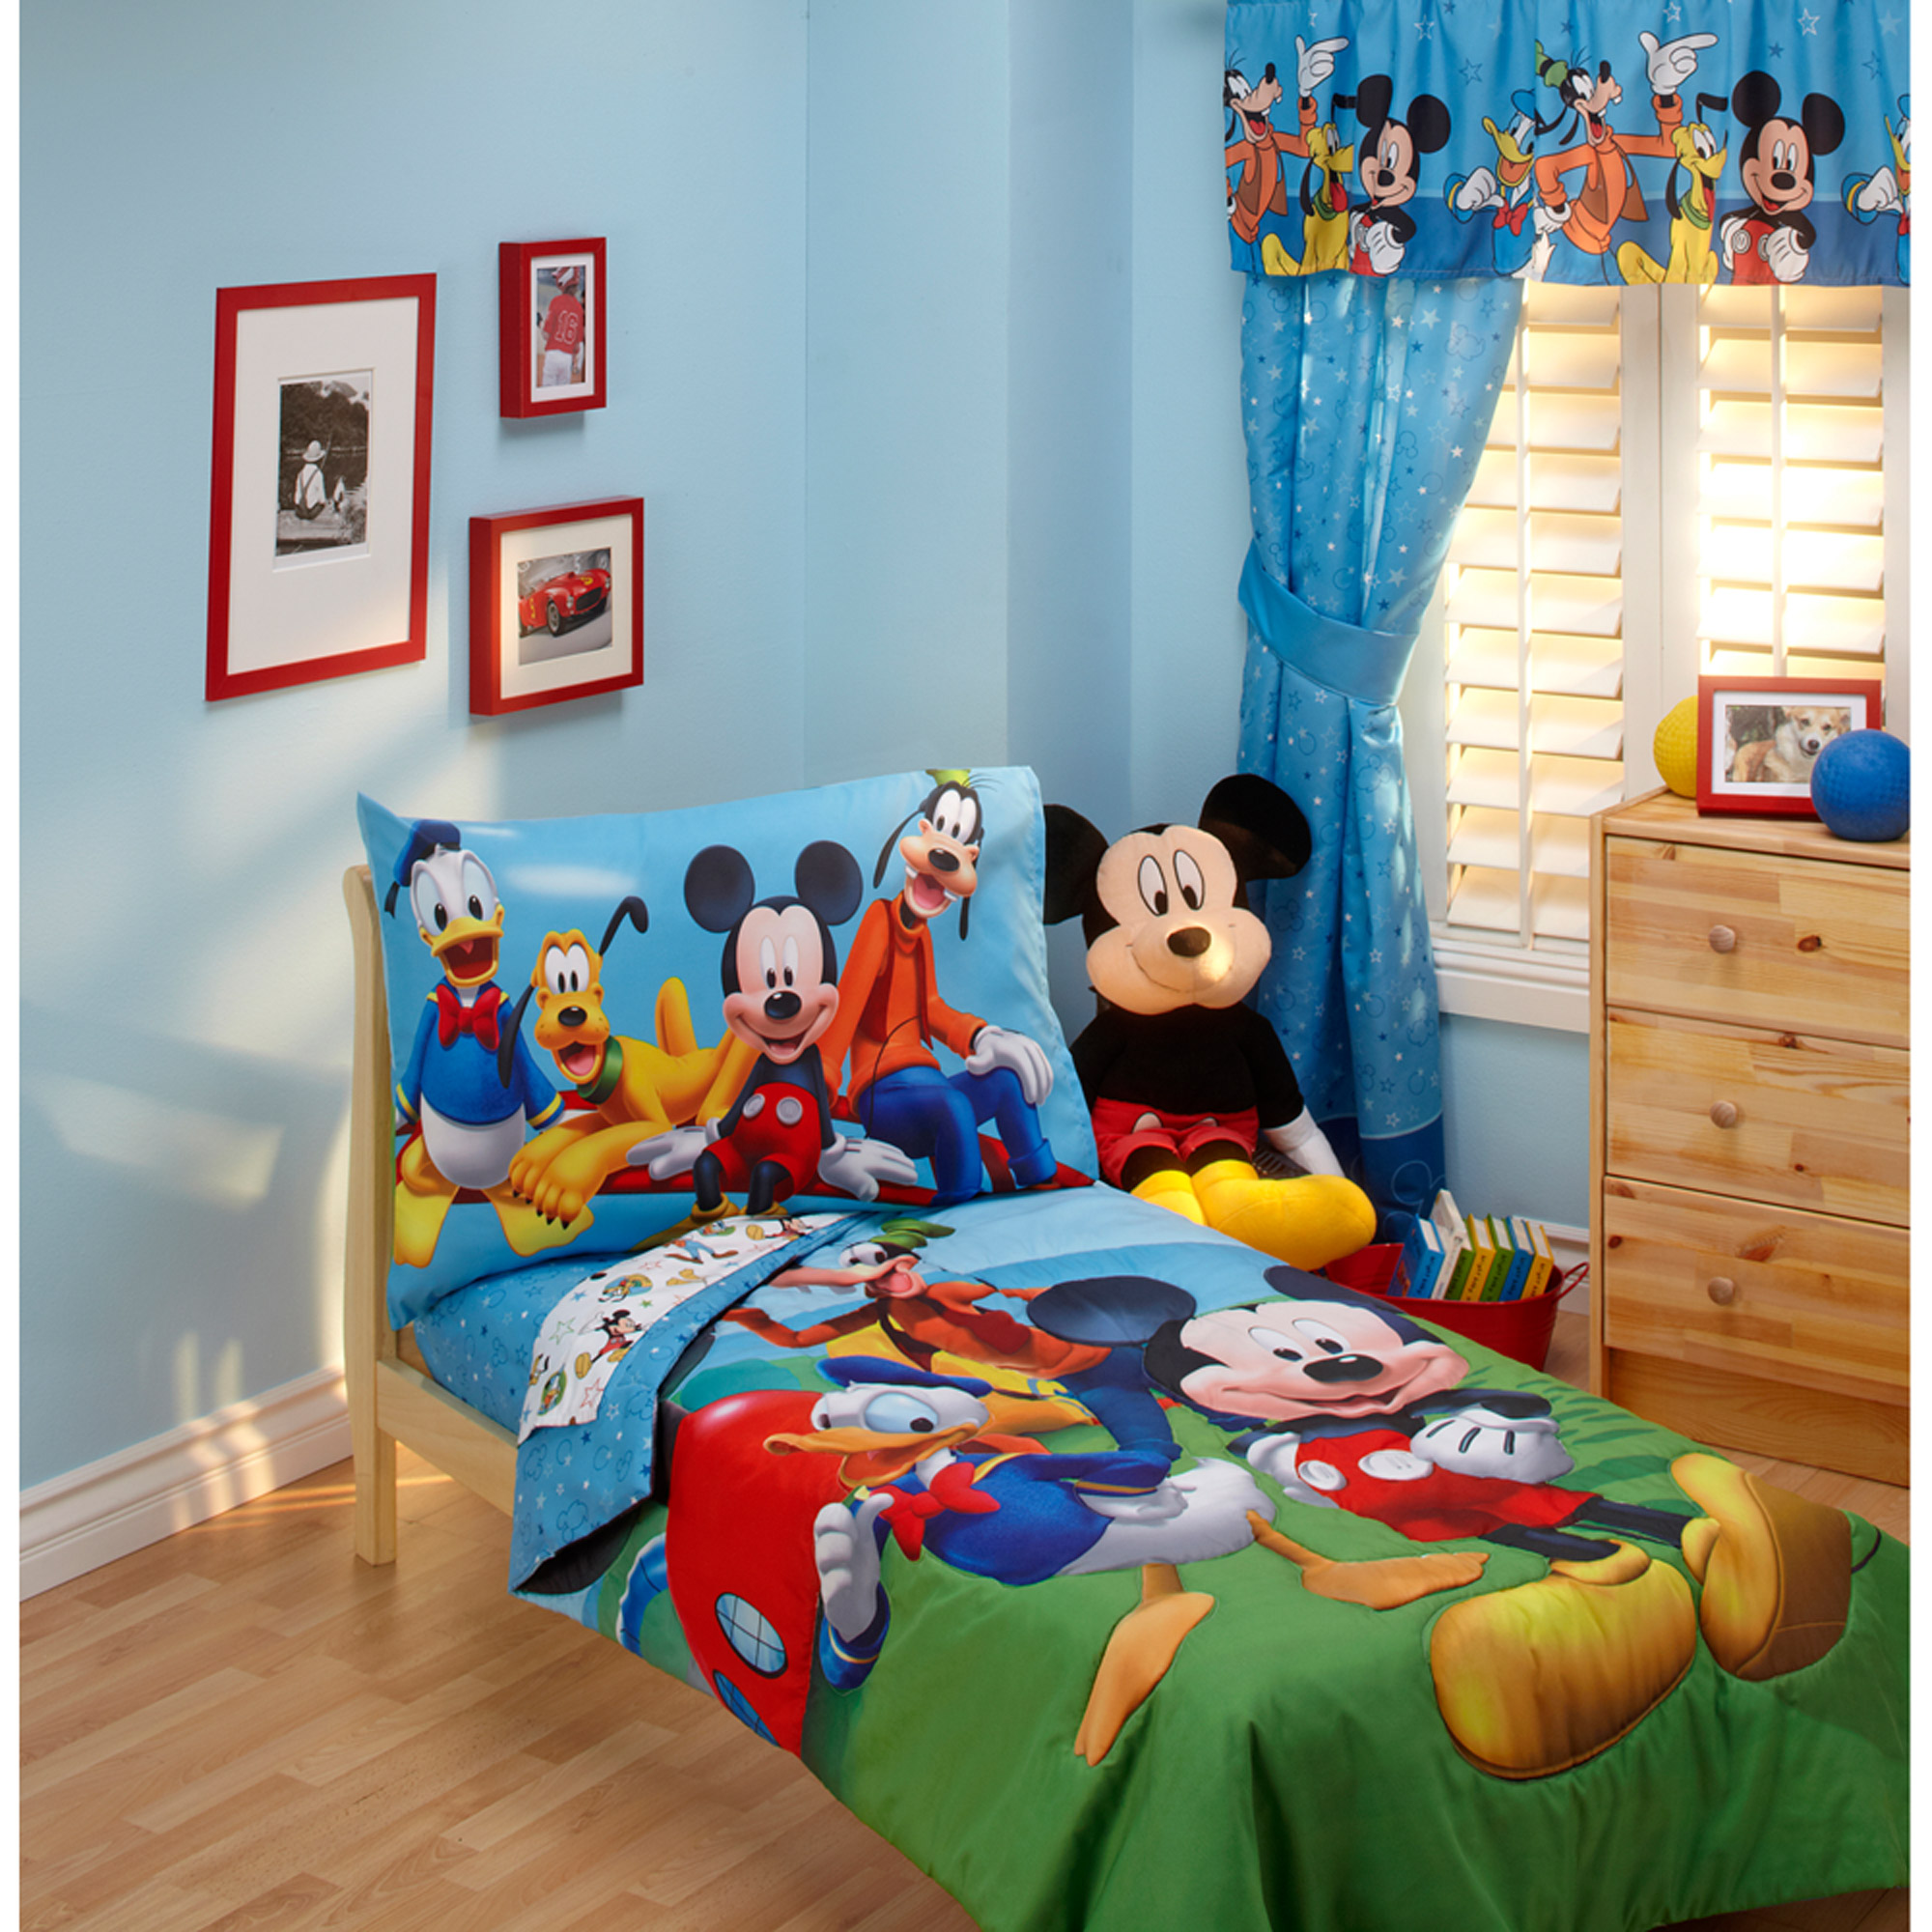 Disney - Mickey Mouse Playground Pals 4pc Toddler Bedding Set